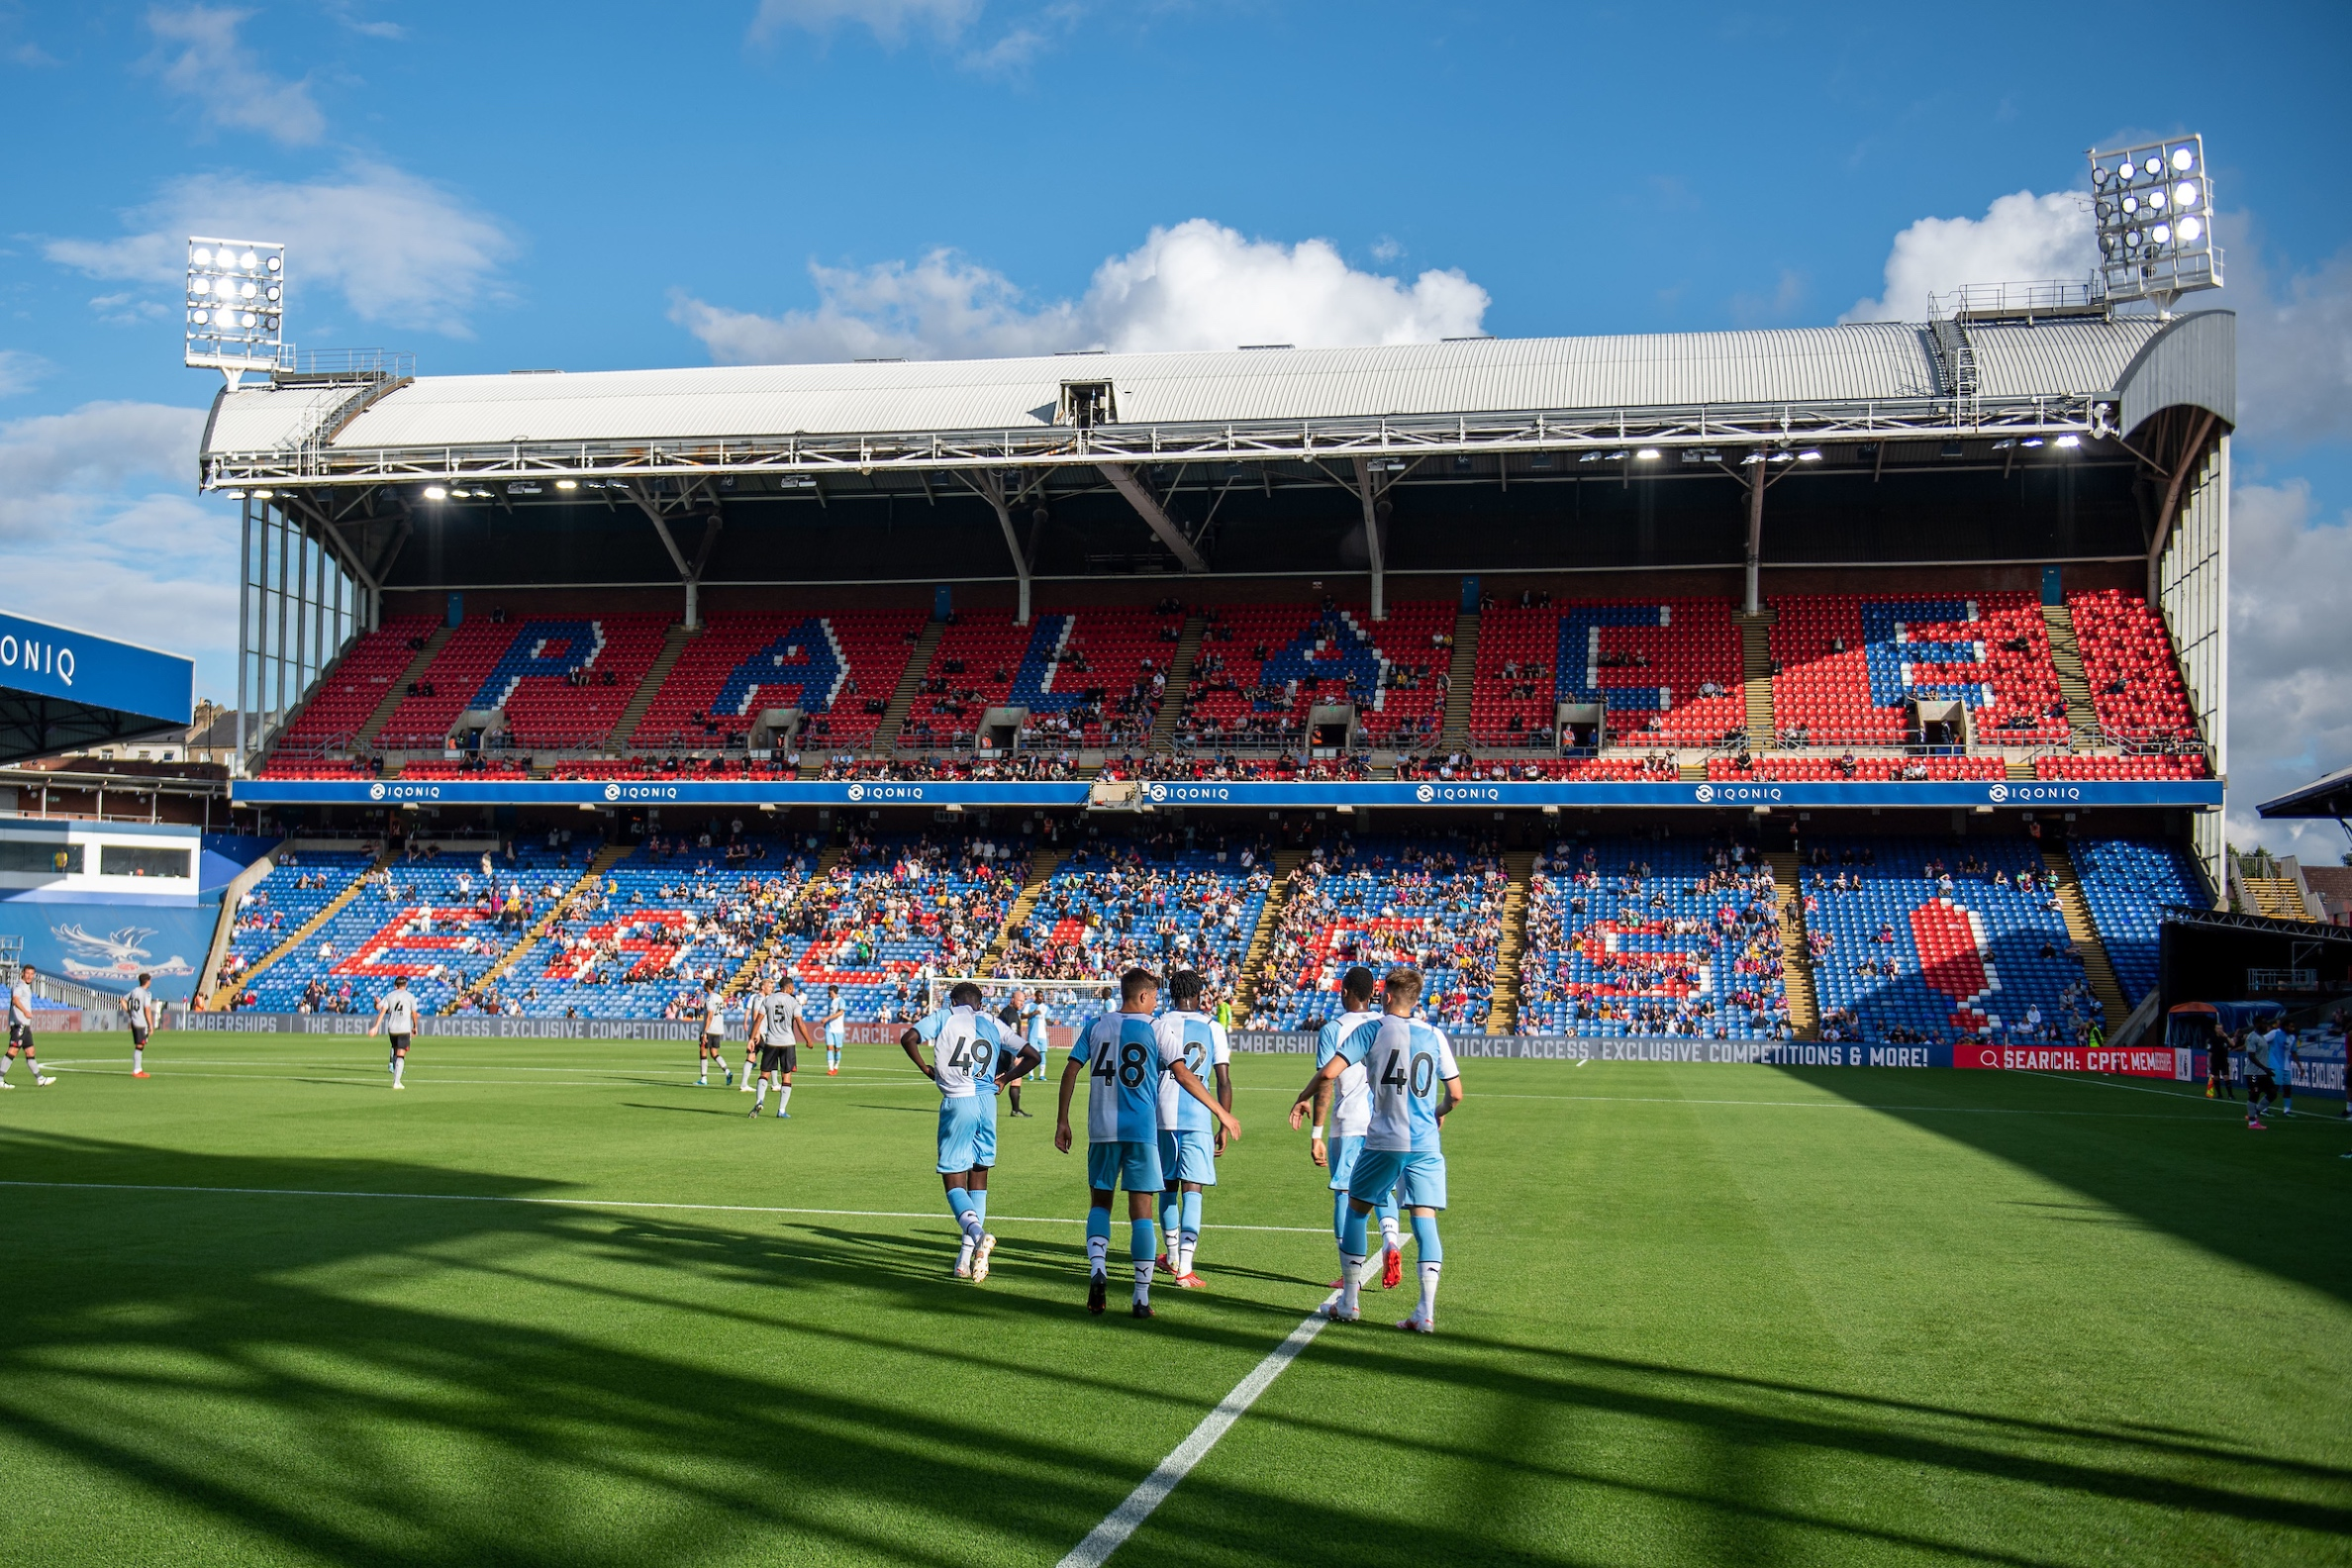 Report: Academy players on target in Vieira's first Selhurst clash